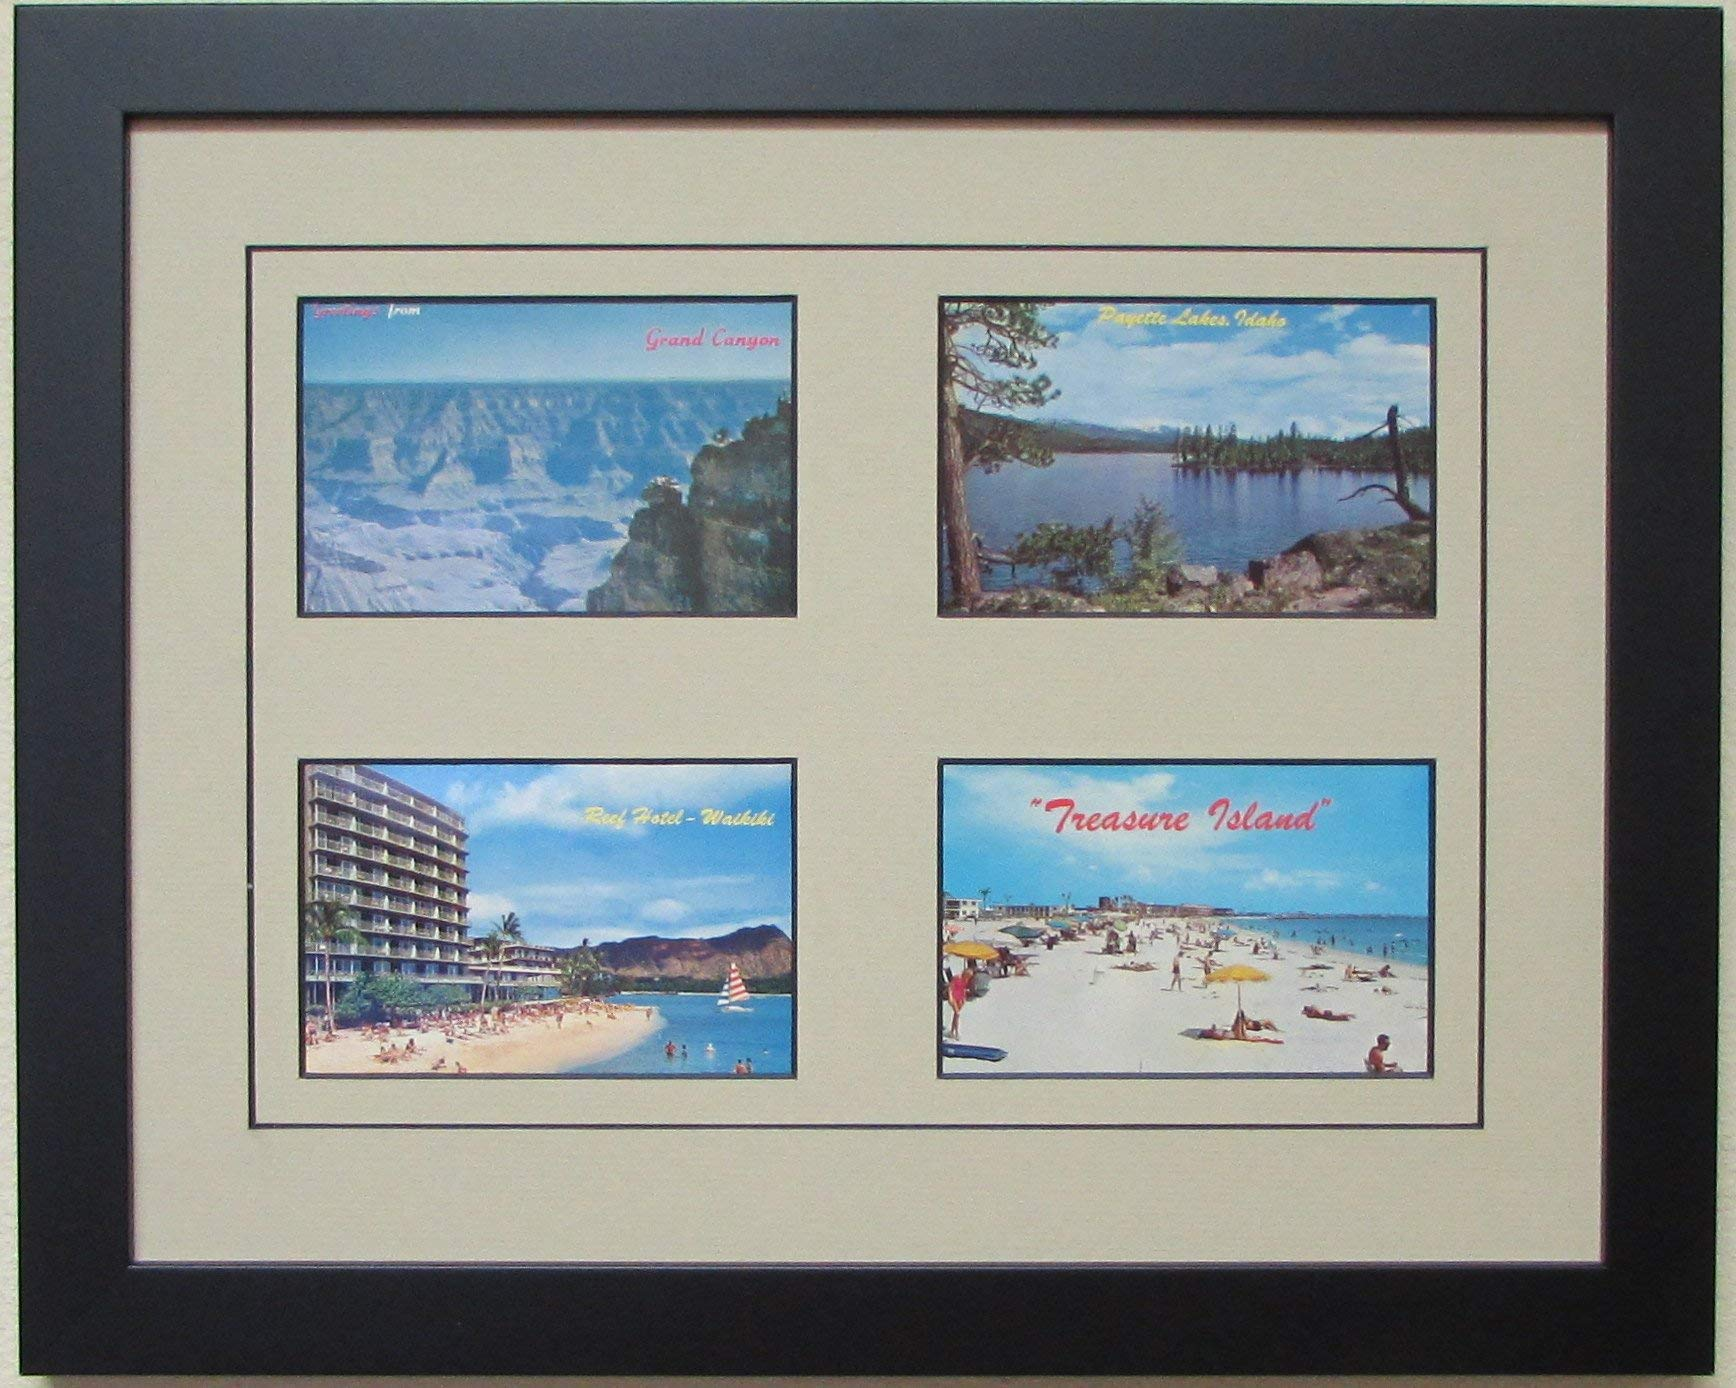 Postcard Frame for 4 Postcards with Tan Mat (Black Frame)